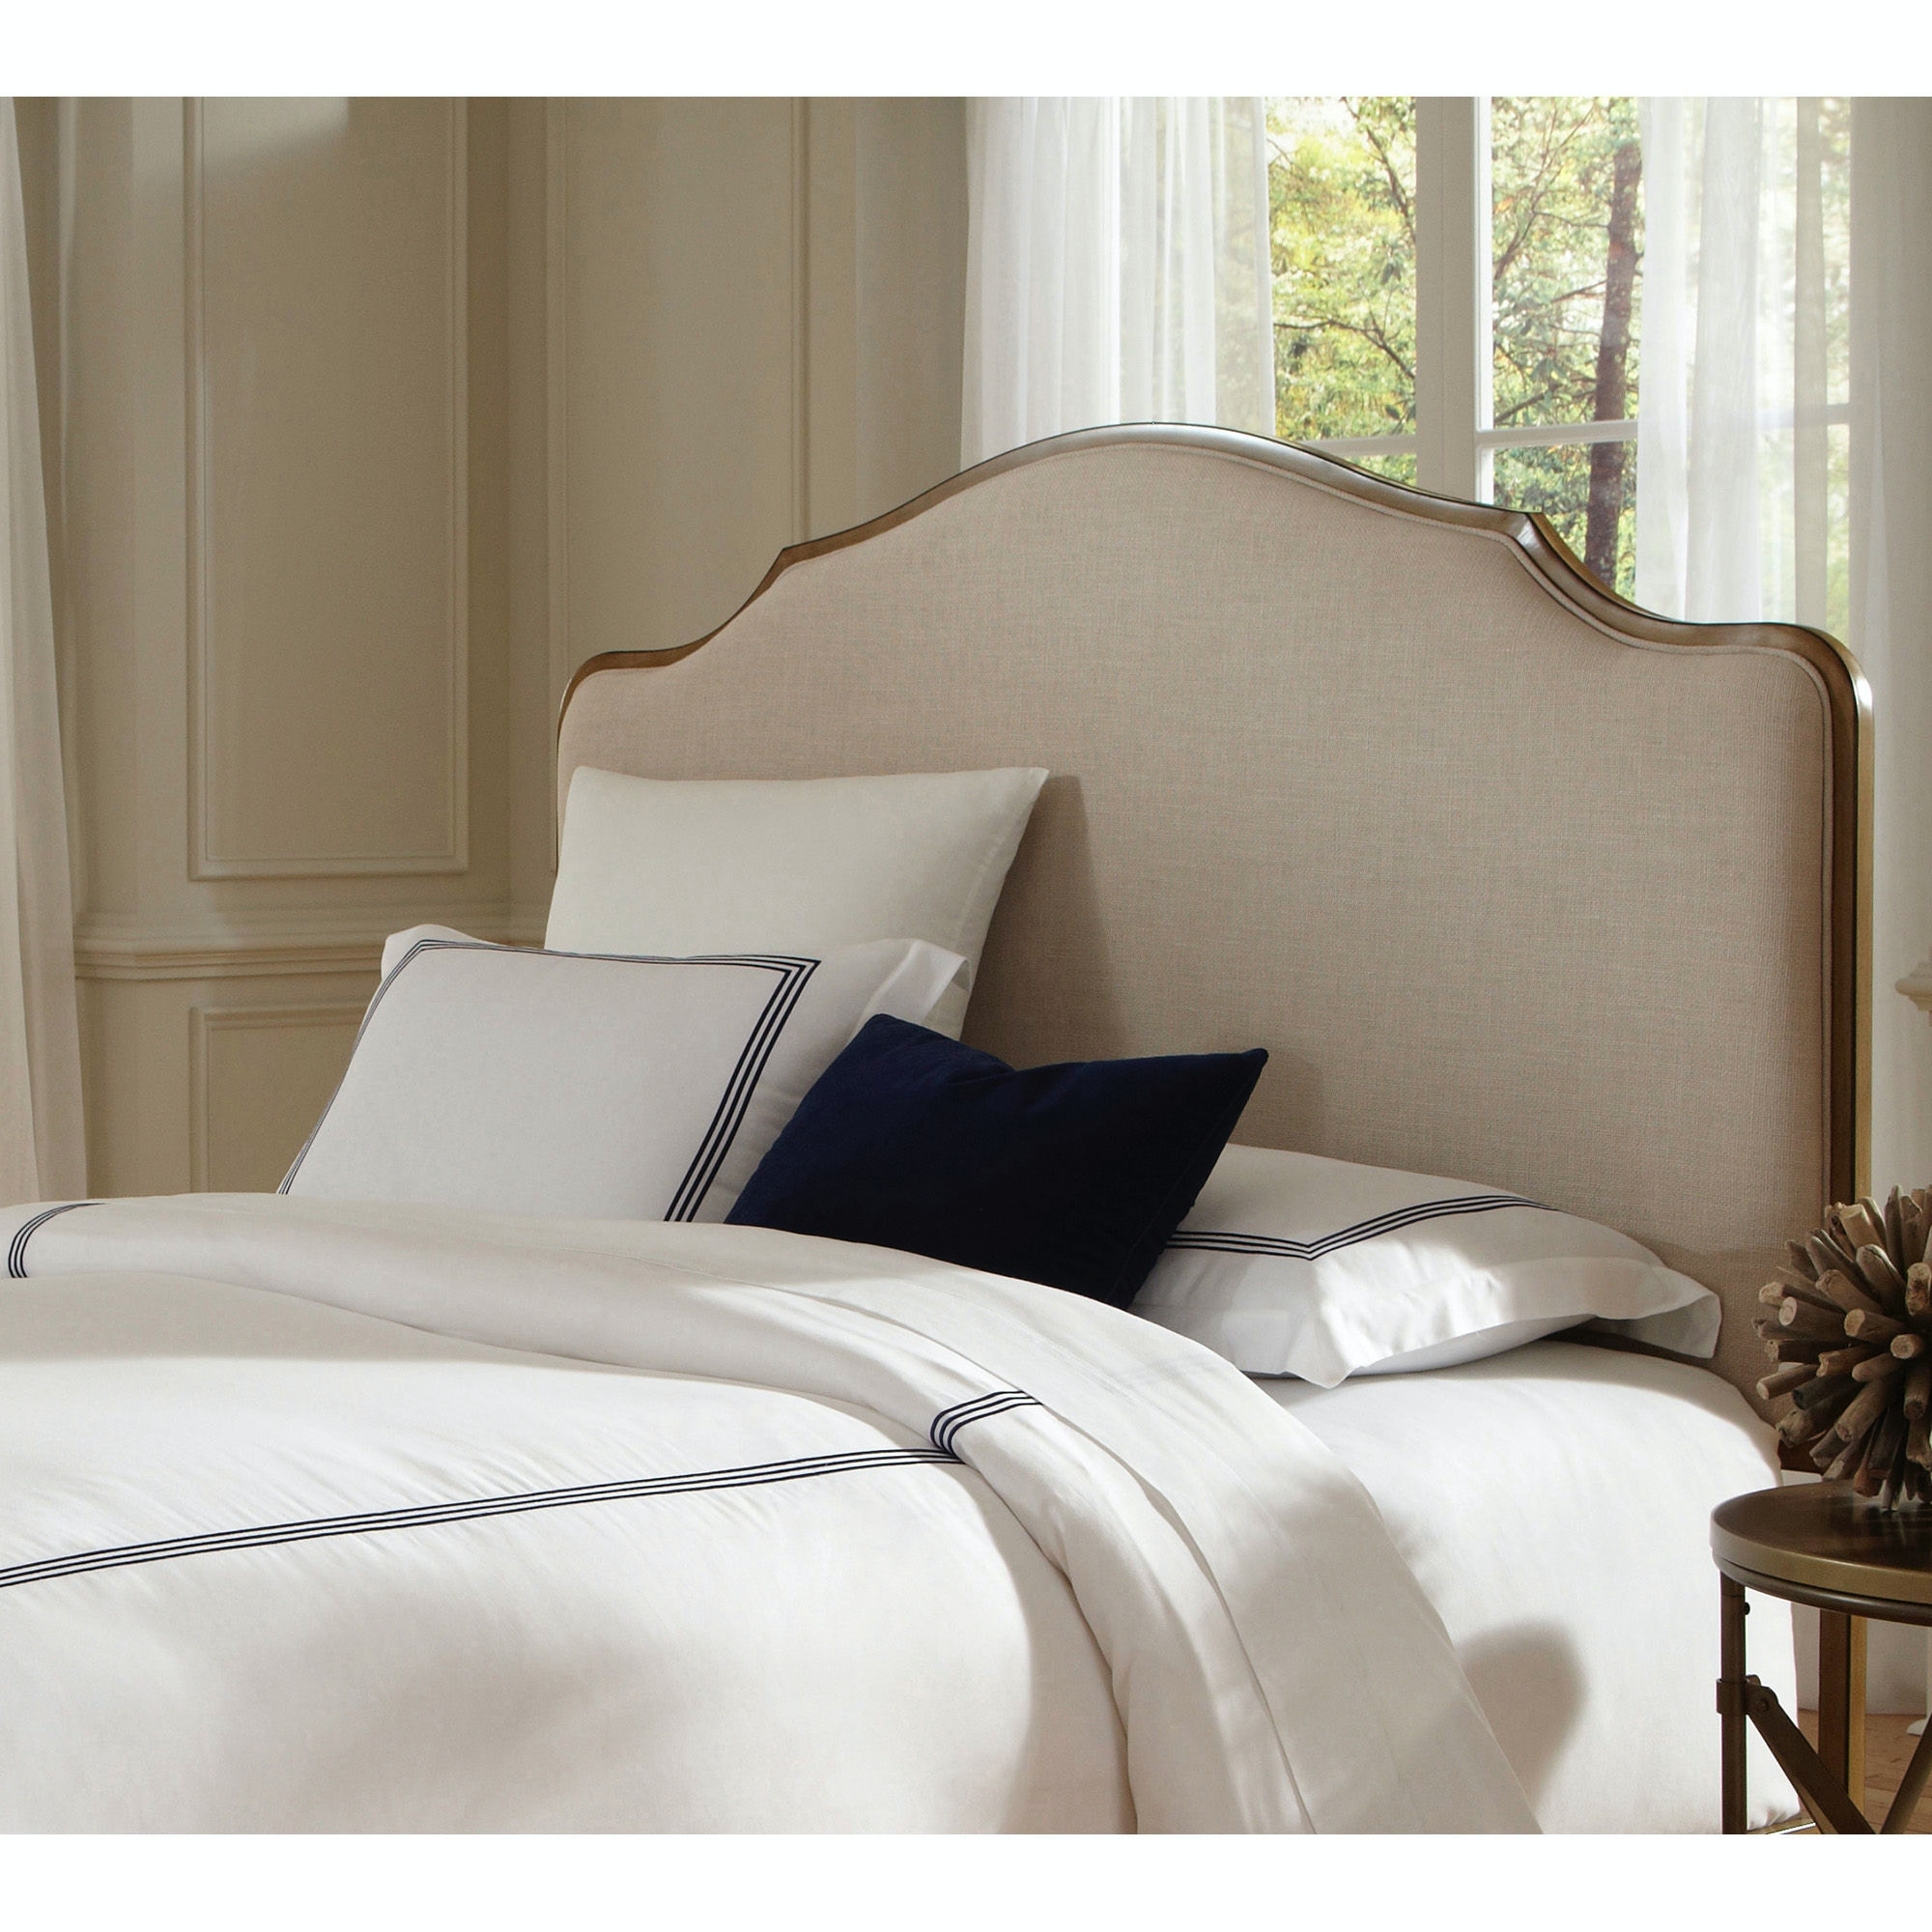 ... Fashion Bed Group Calvados Metal Headboard With Sand Colored  Upholstery, Natural Oak Finish, Queen